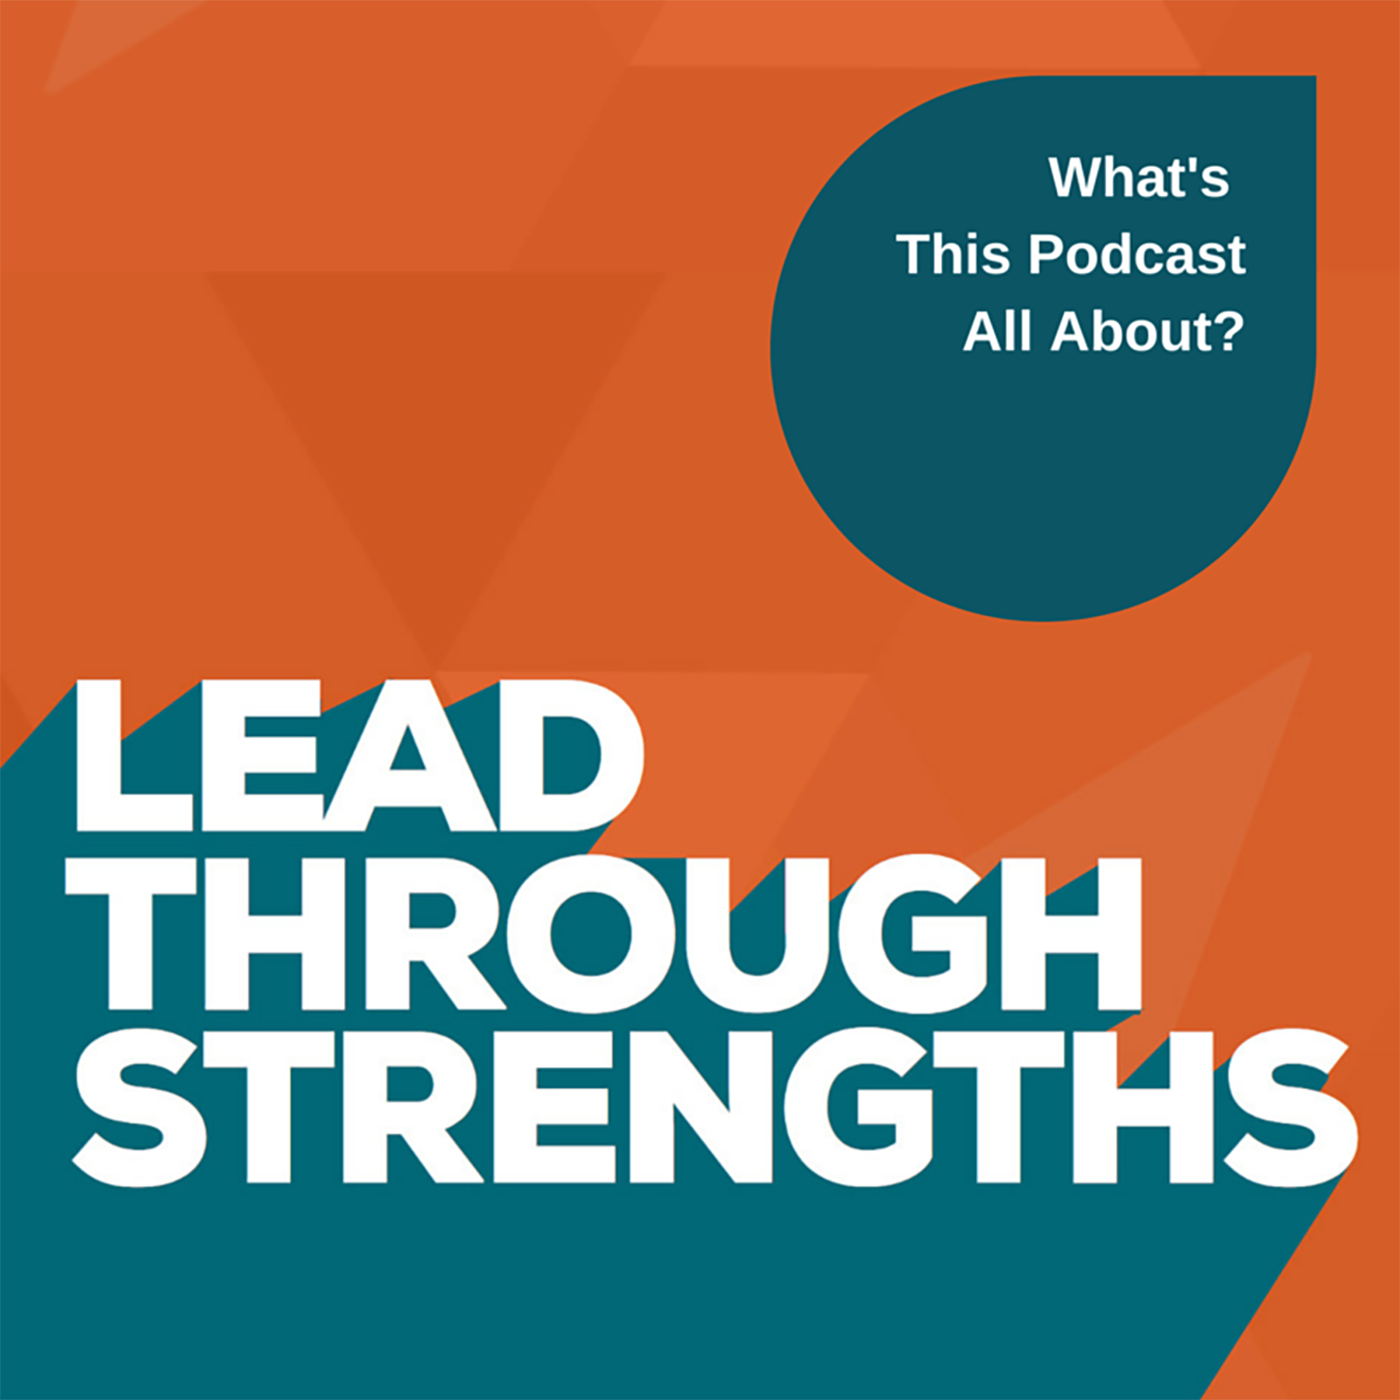 What to expect from this podcast - what's in it for you?